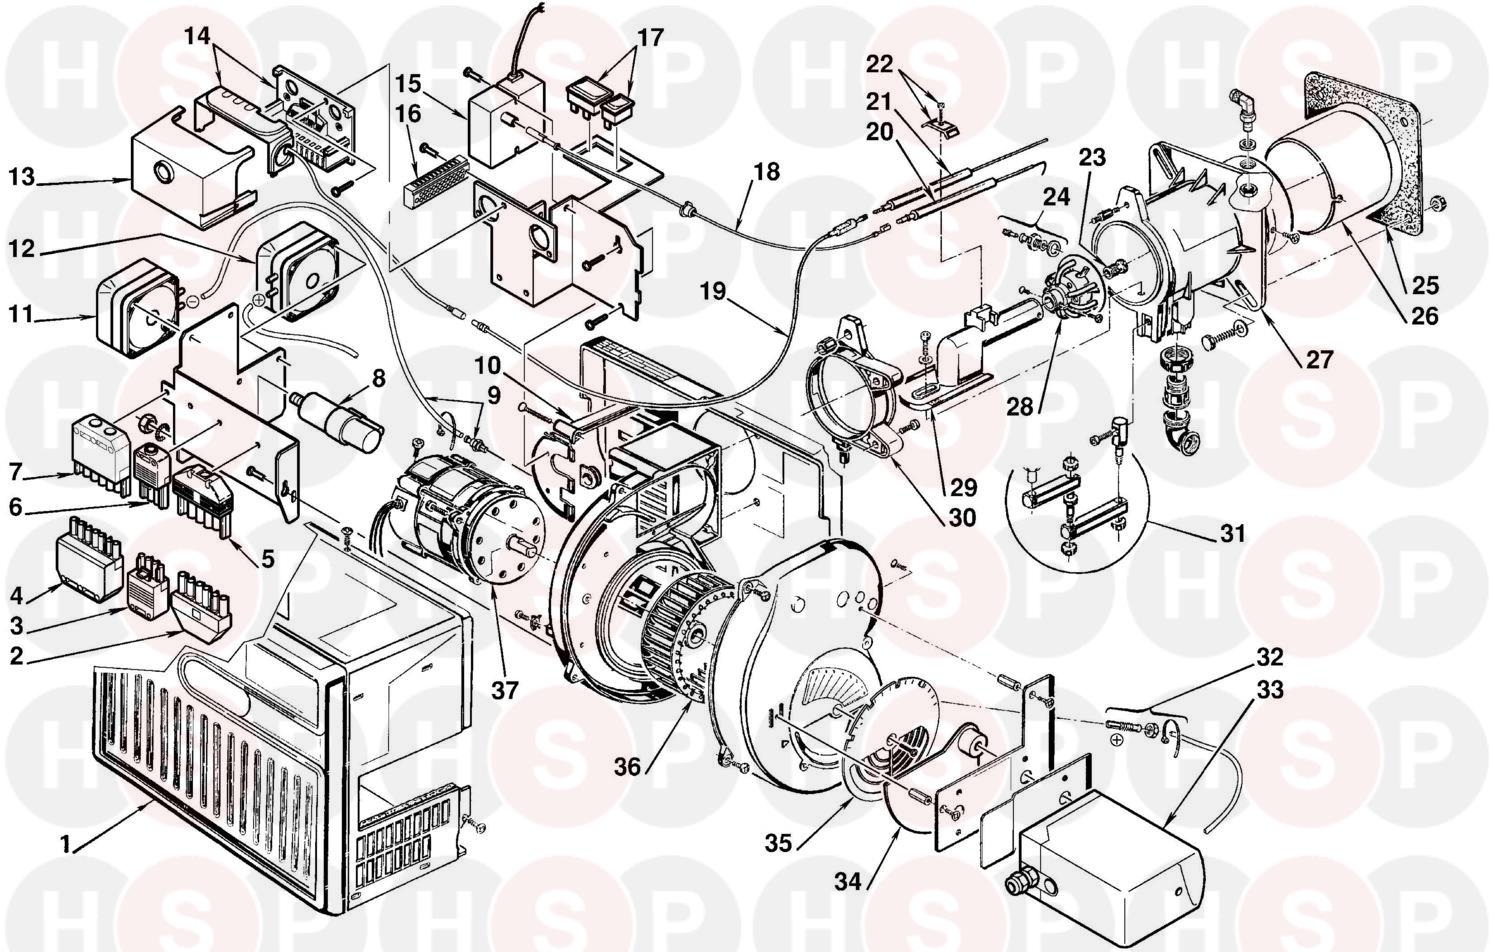 Riello RIELLO BURNER 40 GS10/M Appliance Diagram (RIELLO